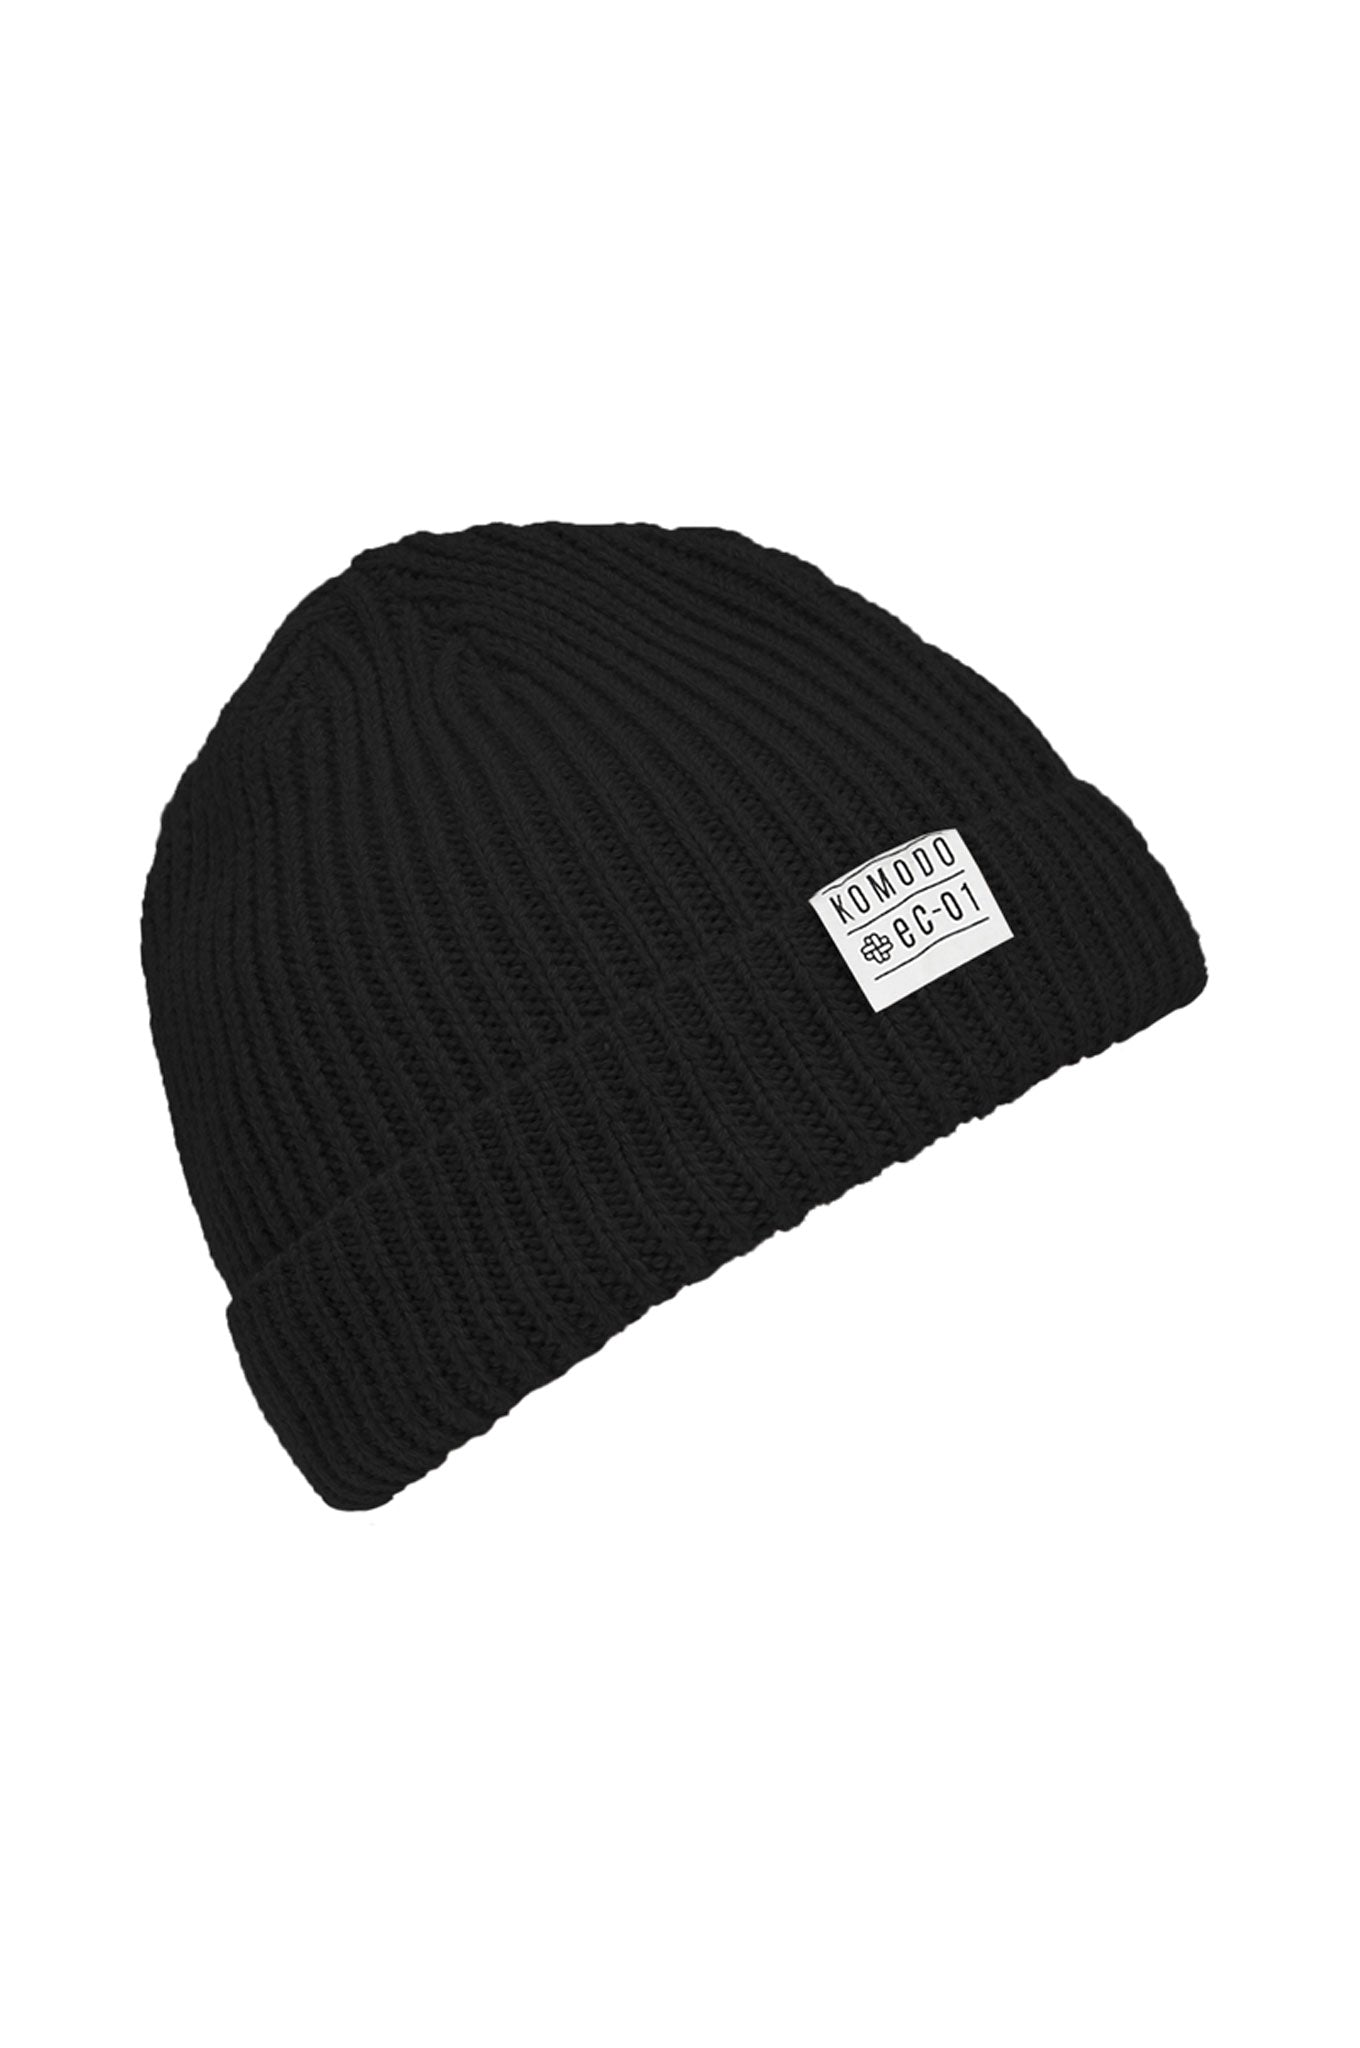 CHRISTOPHE Unisex Merino Hat Black